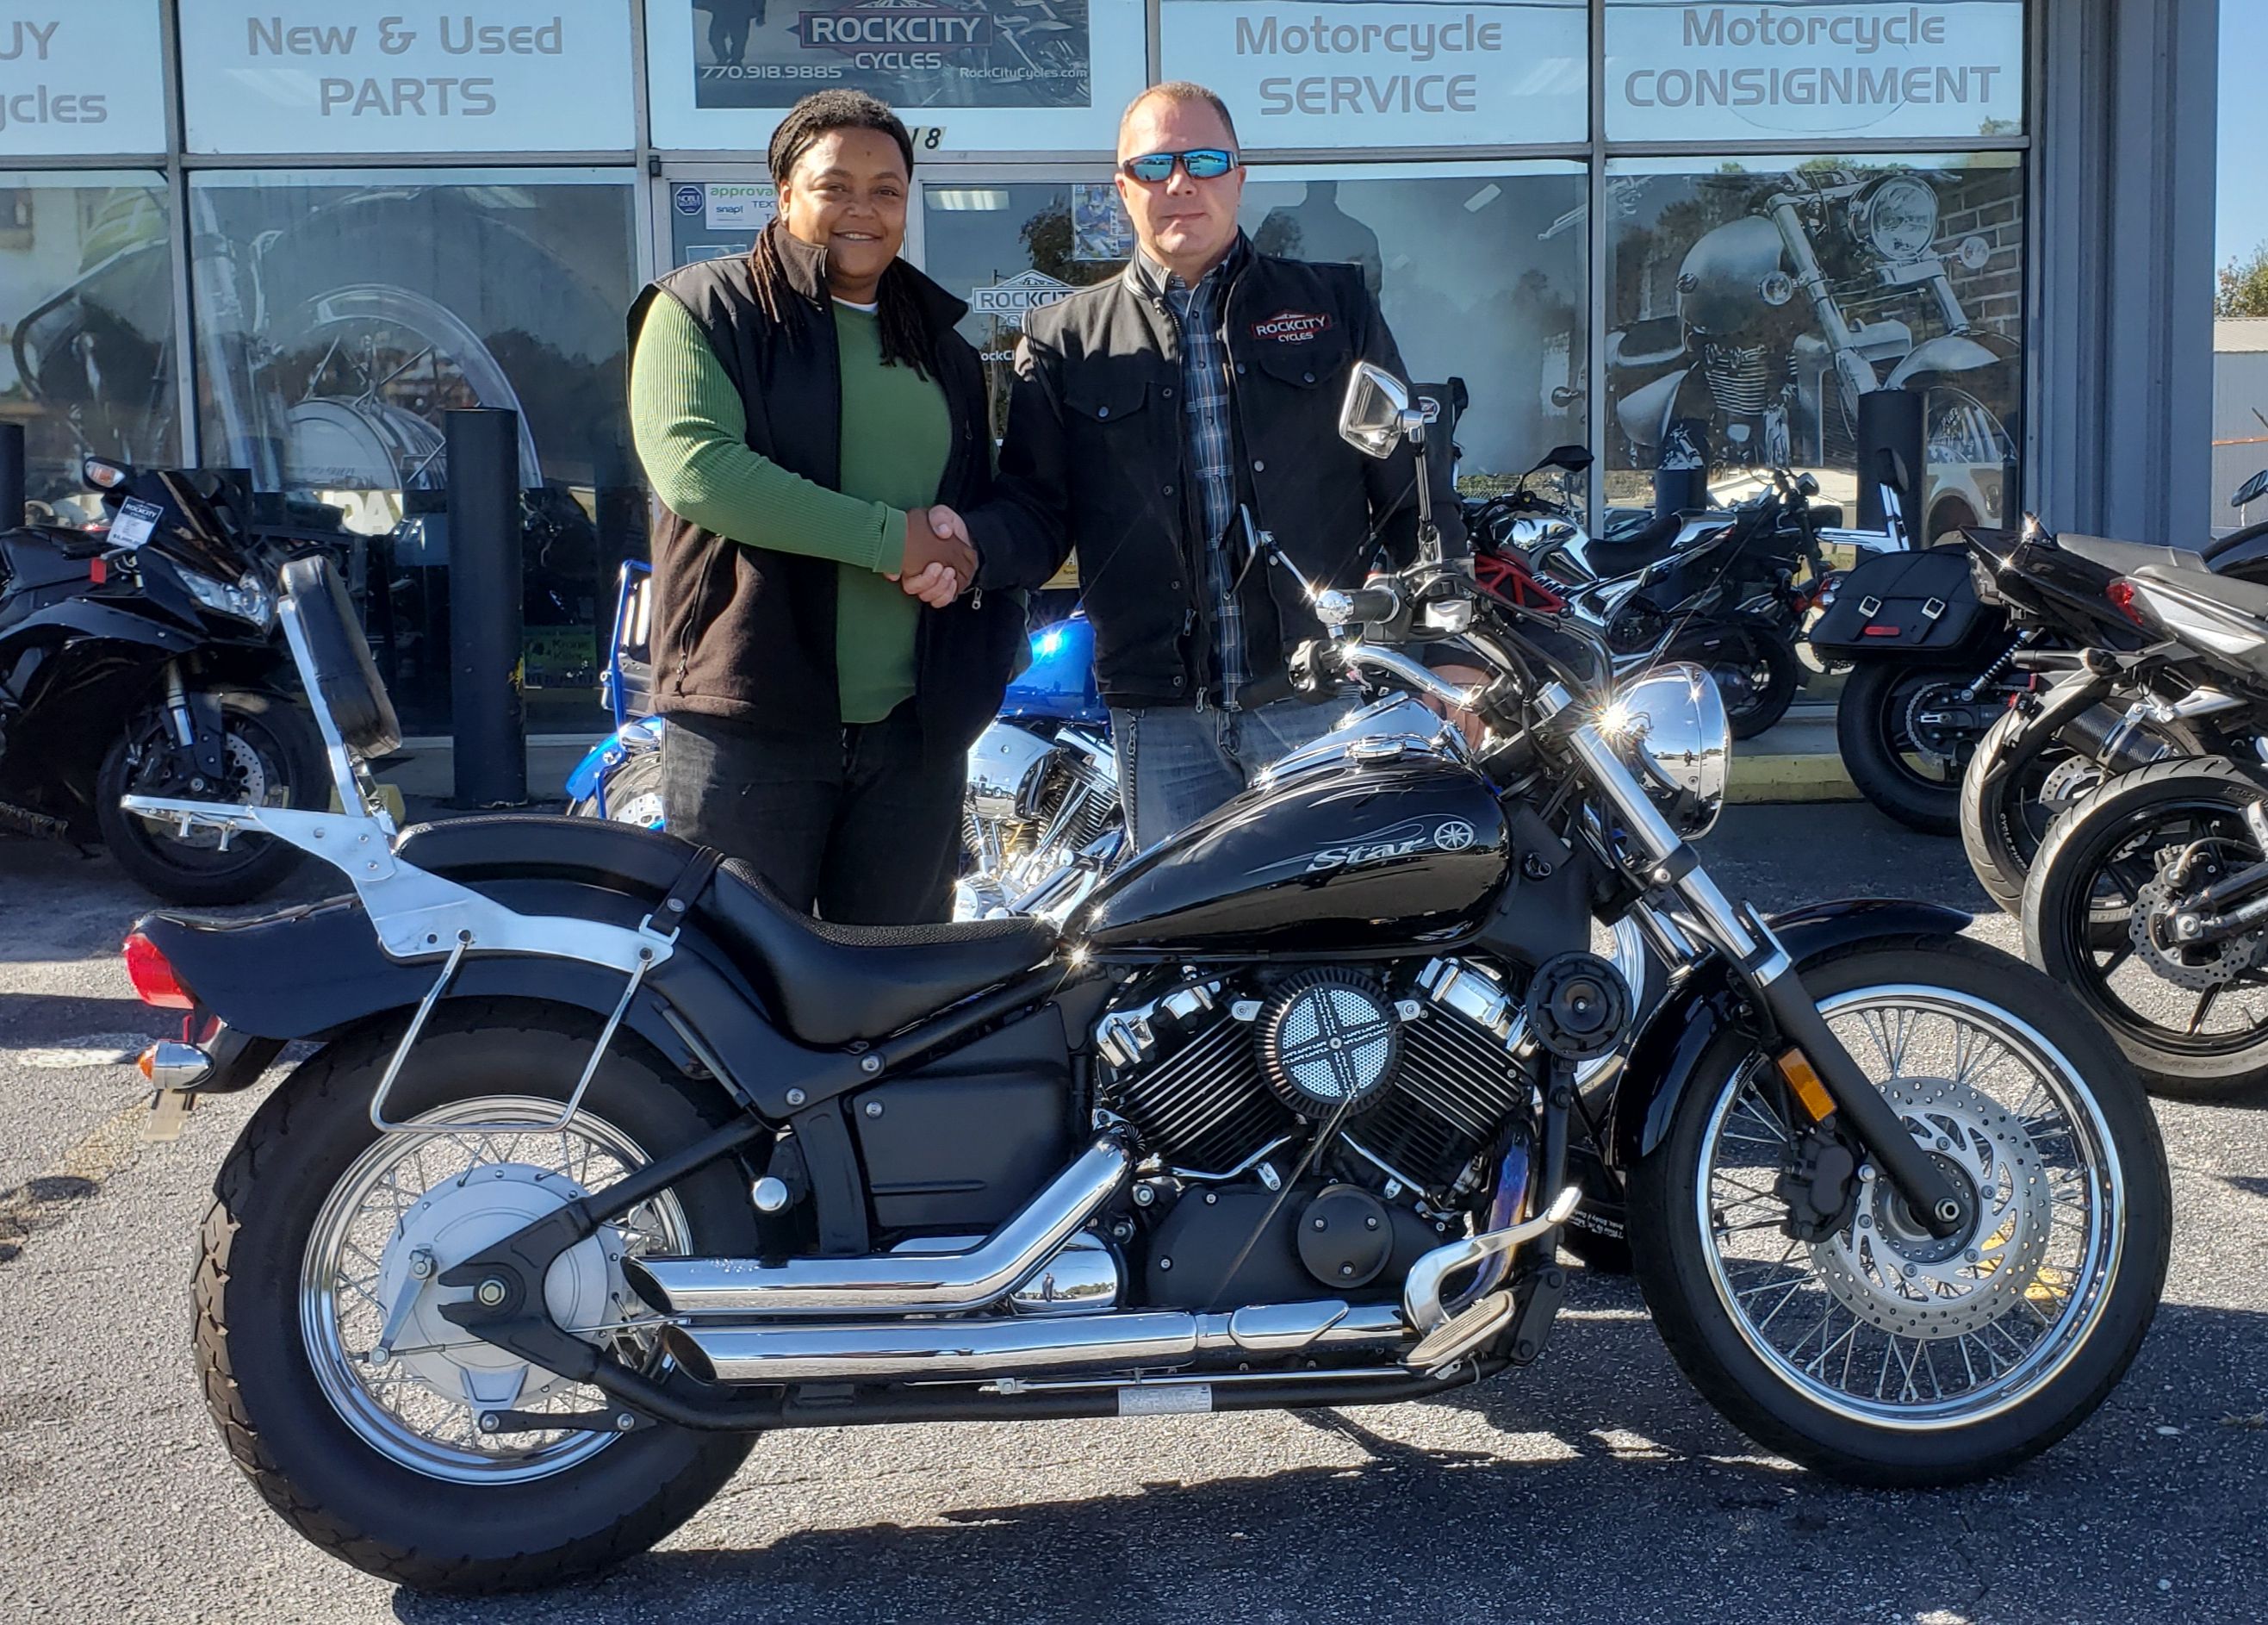 Candice M. with her 2008 Yamaha XVS650